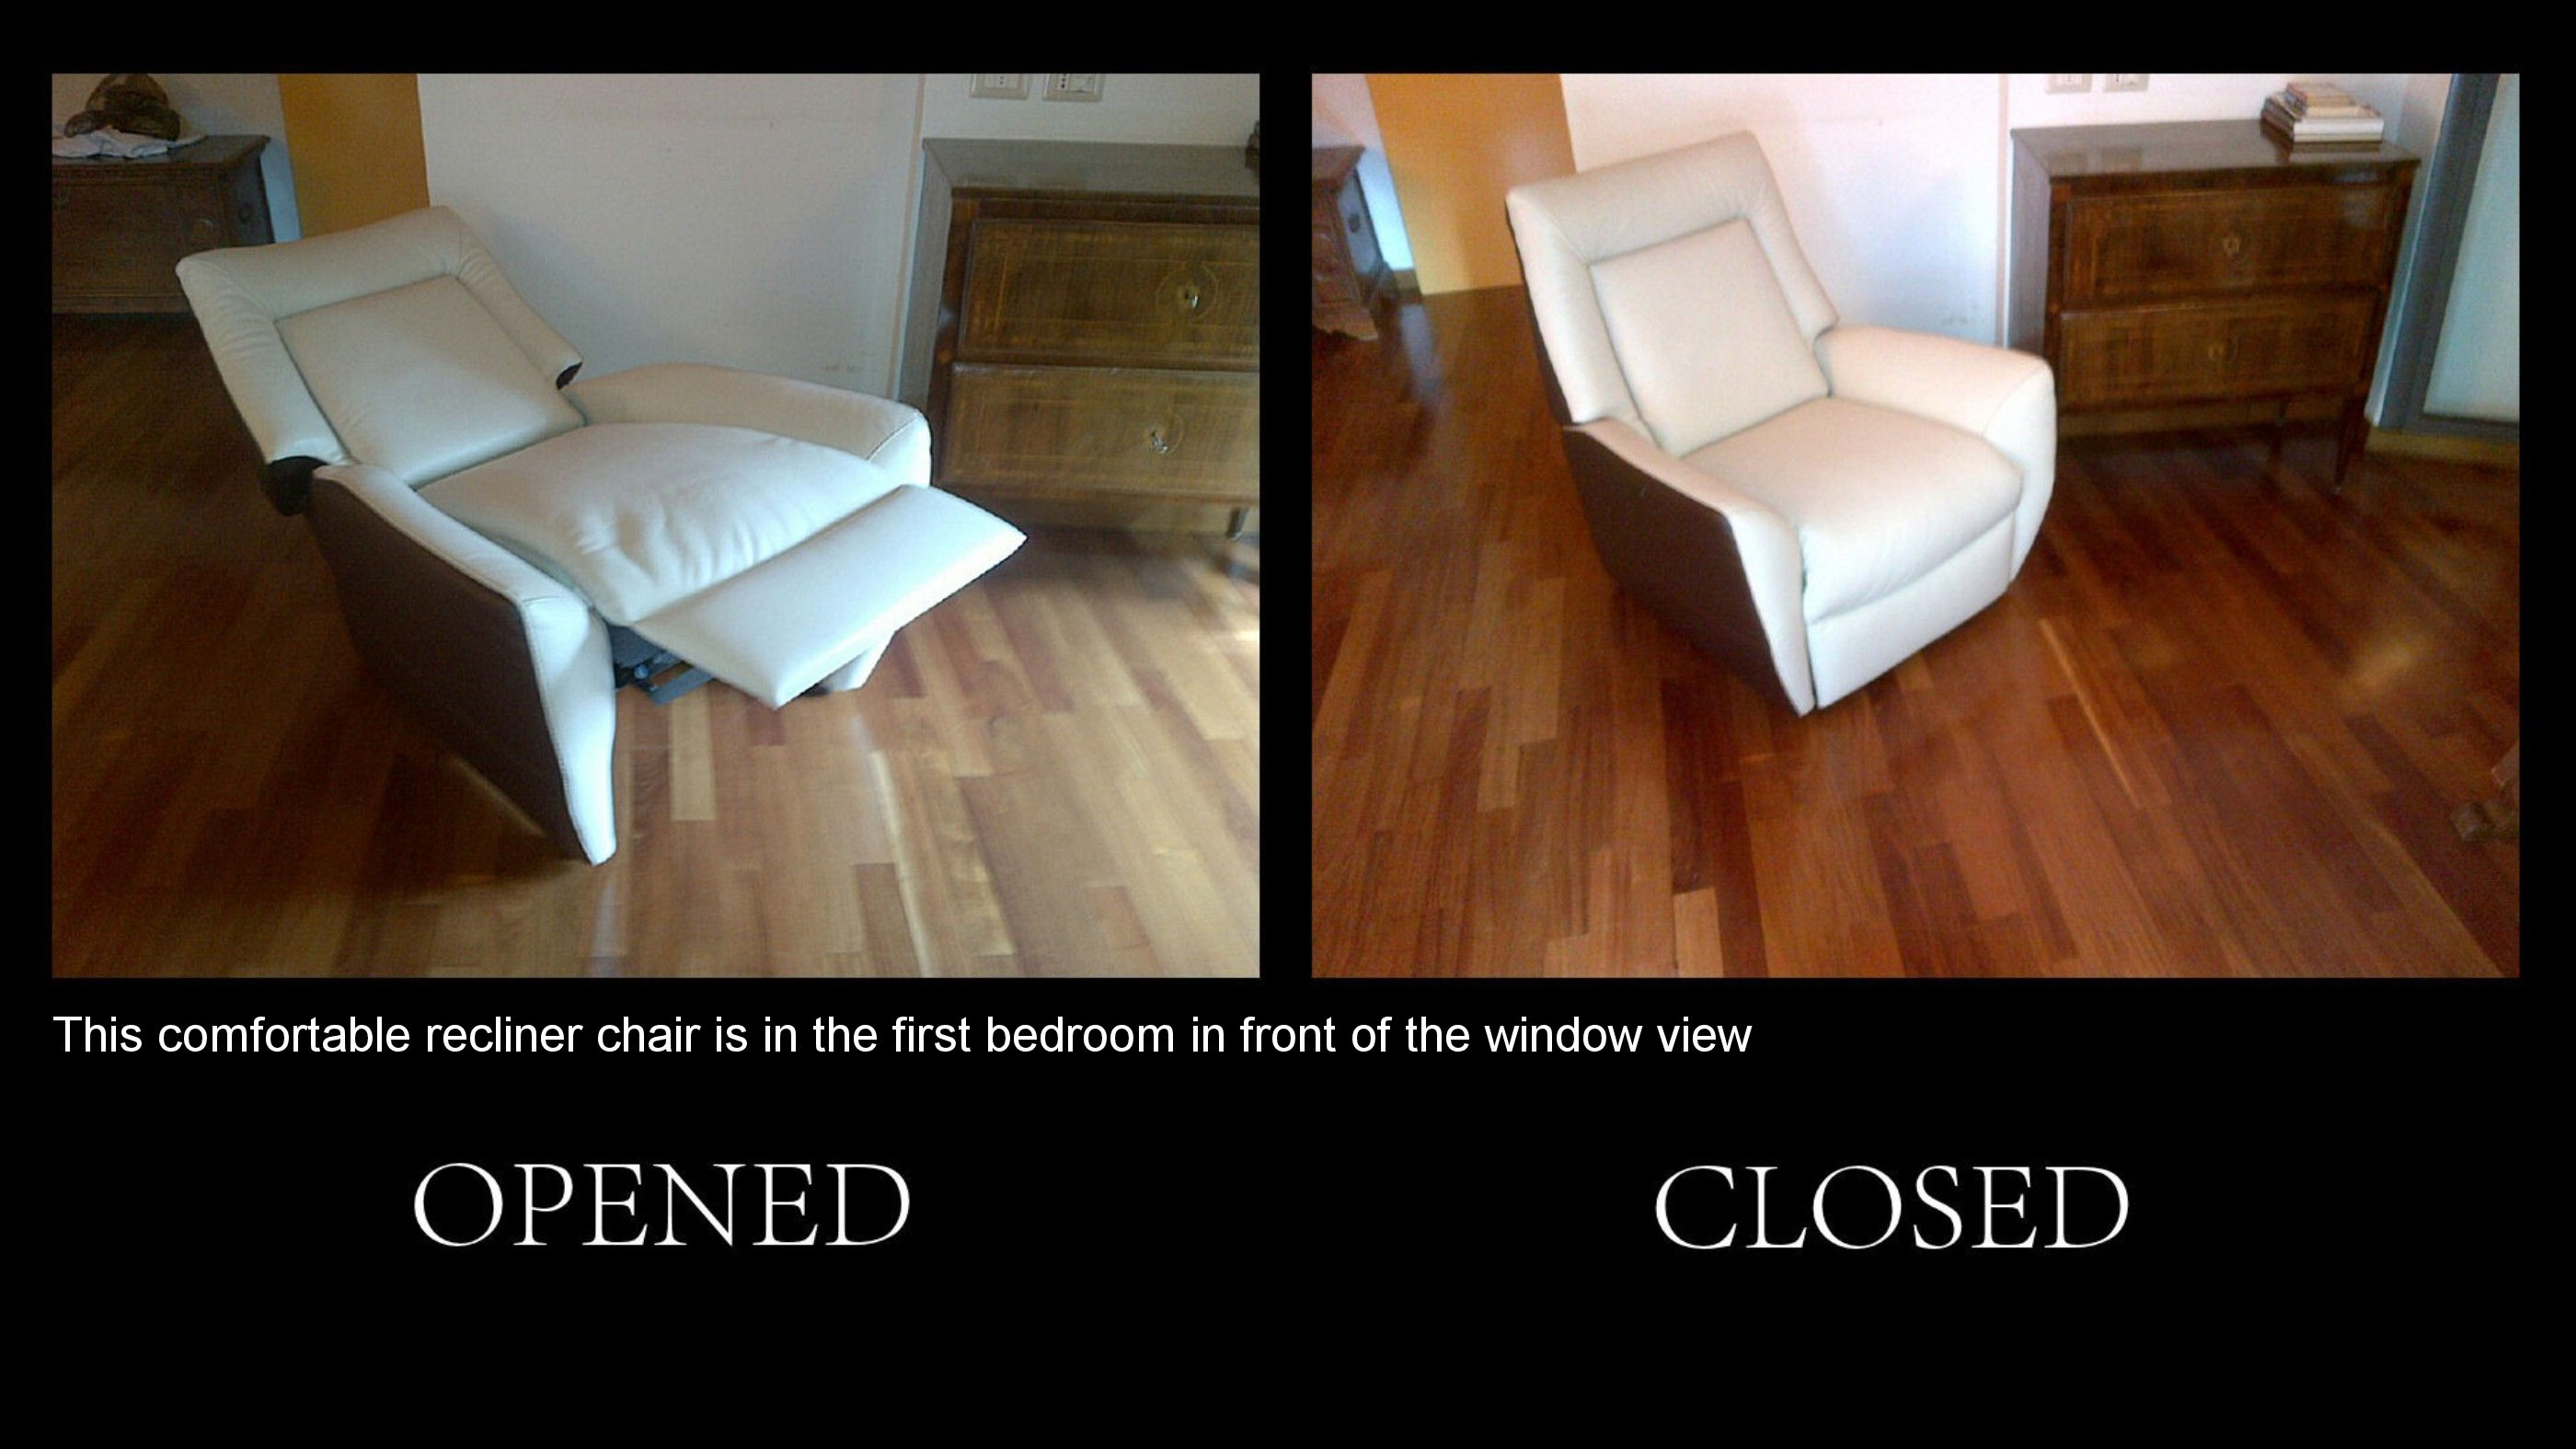 25) this comfortable recliner is in the first bedroom, window view